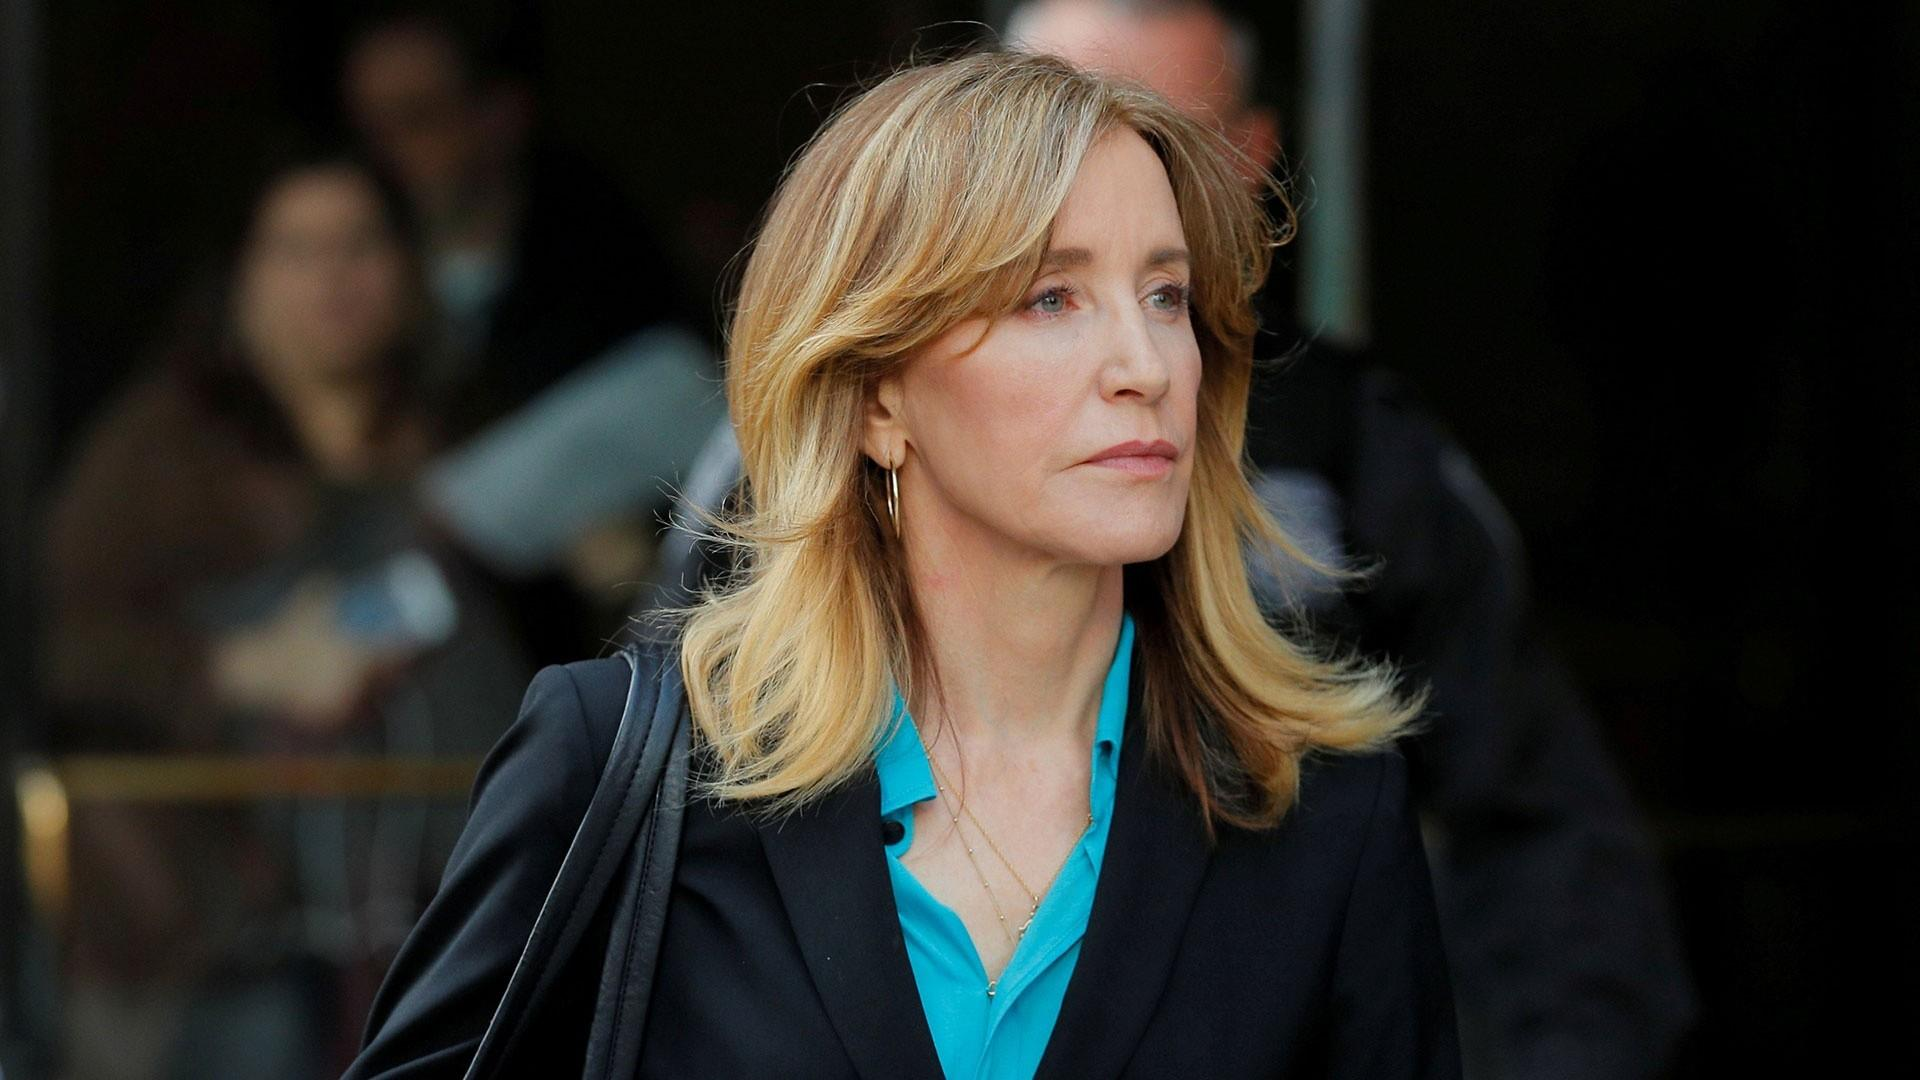 College admissions scandal: Stanford expels student allegedly tied to the scheme